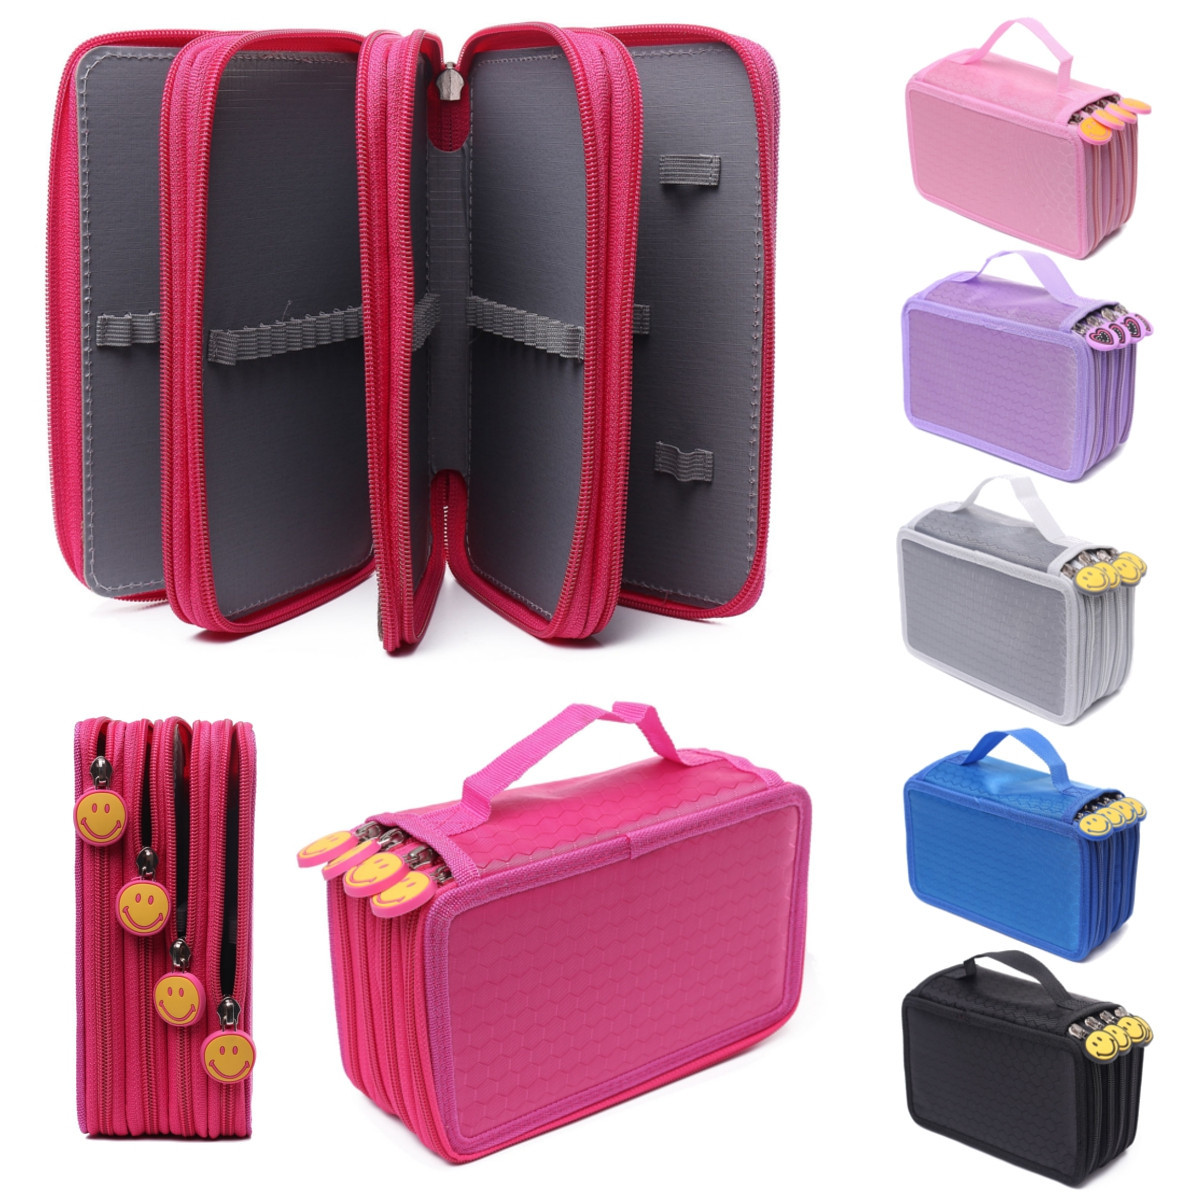 Meigar Multi-layer Zipper Pen Bag Pencil Case, Cosmetic Travel Cosmetic Brush Makeup Storage Bags Pouch Box